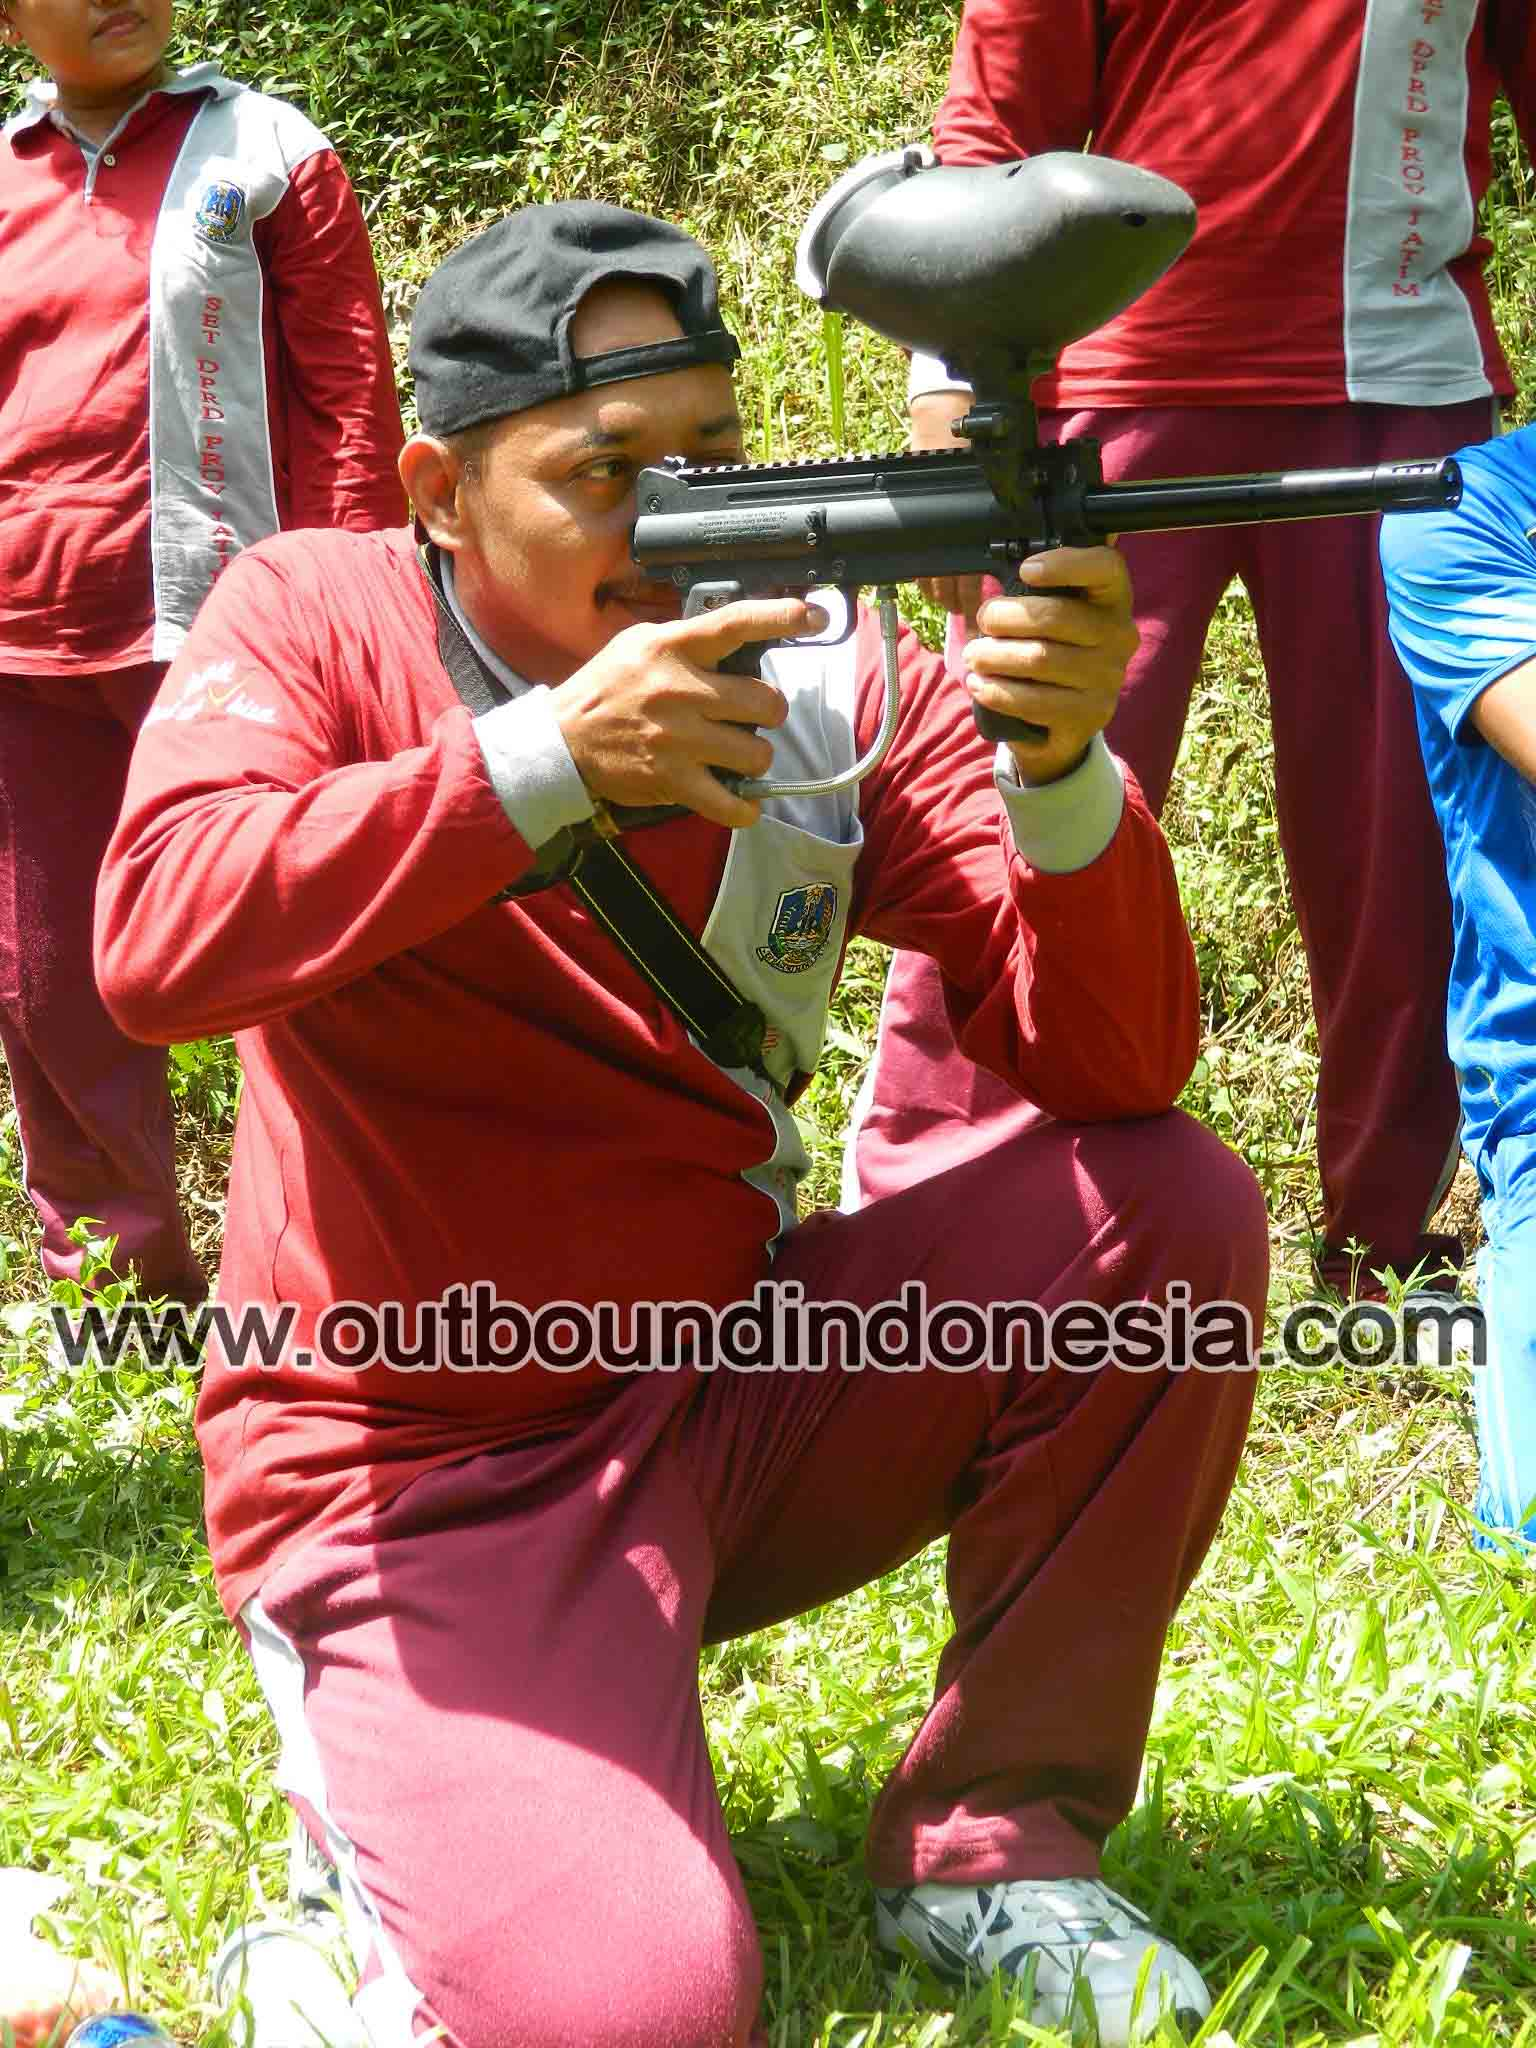 Paintball di Malang, www.outboundindonesia.com, 085755059965